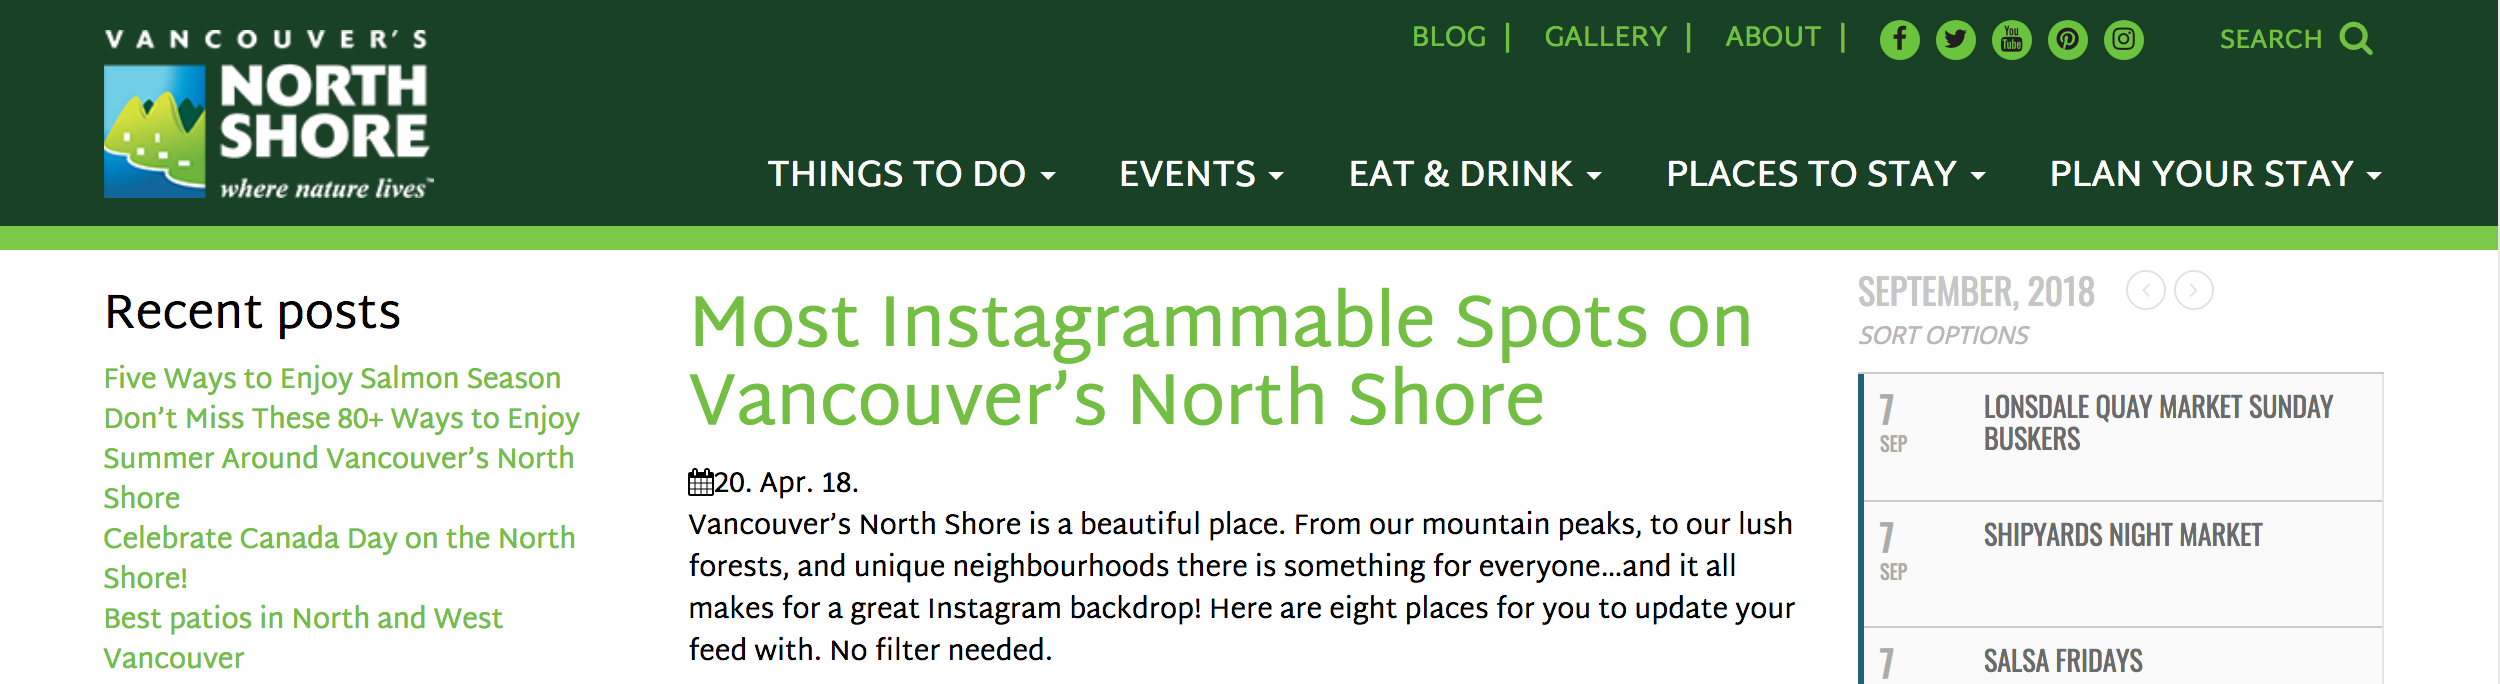 http://vancouversnorthshore.com/things-to-do-north-vancouver/most-instagrammable-spots-on-vancouvers-north-shore/